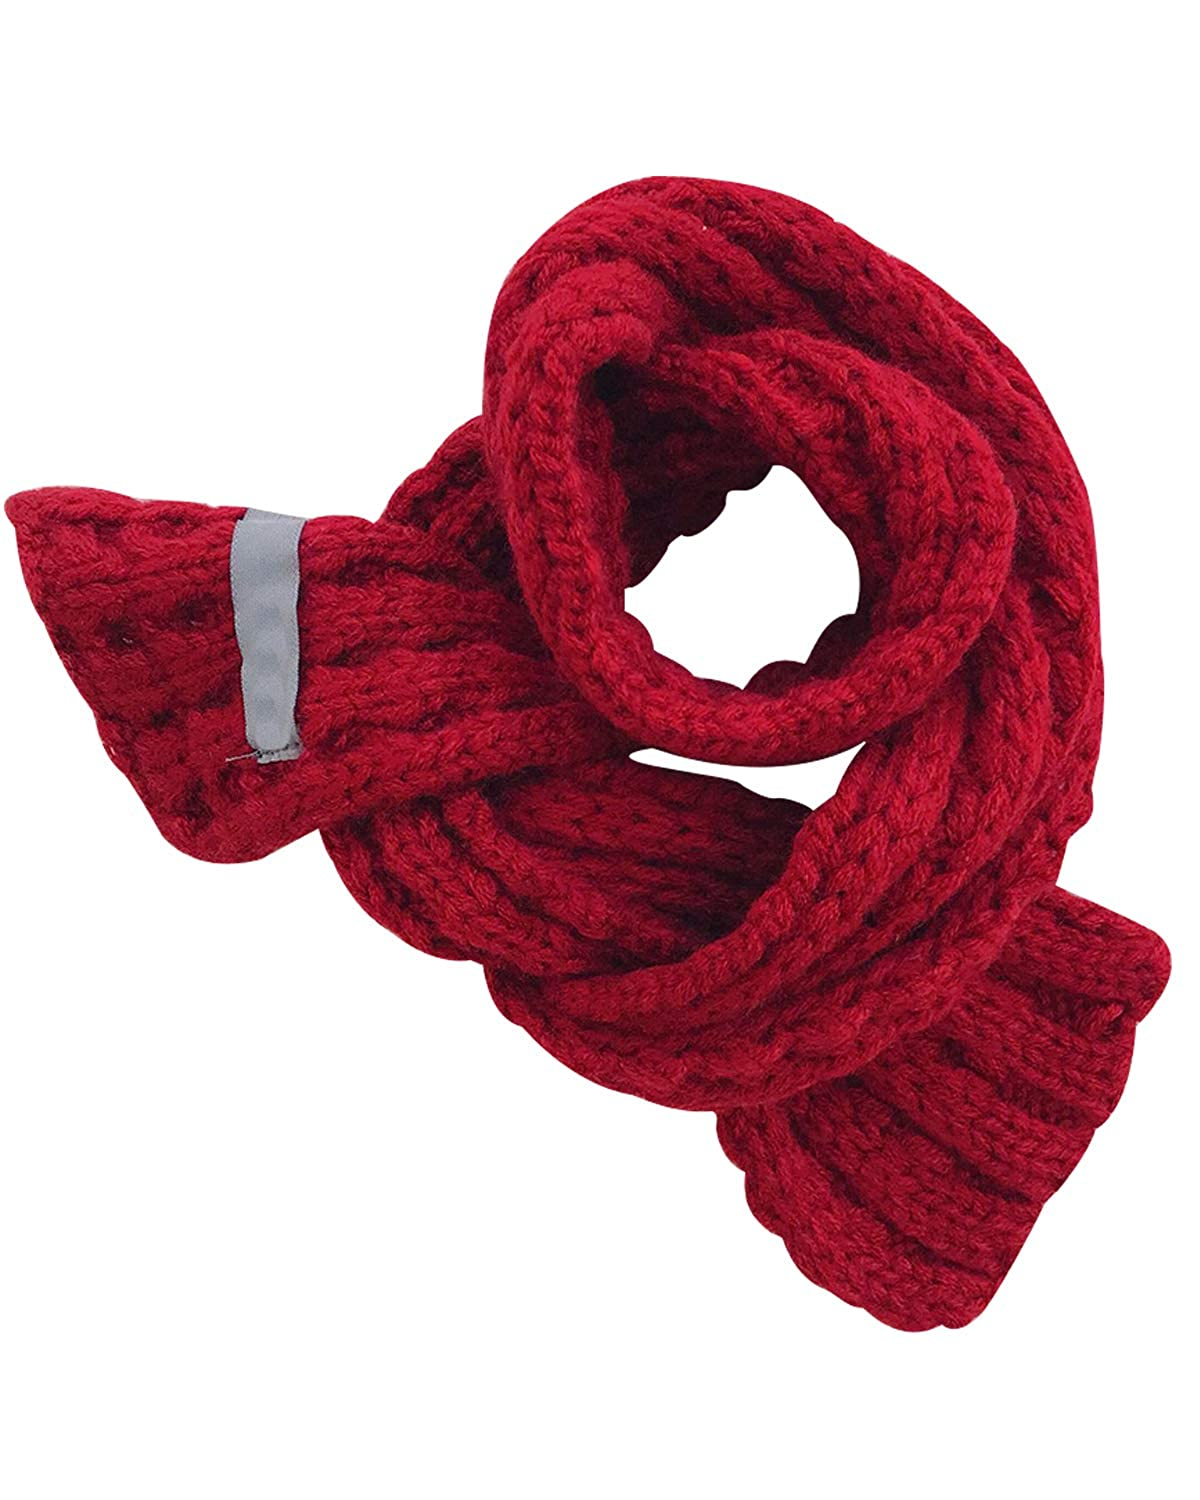 DULEE Boys Girls Autumn Winter Scarf Fashion Warm Knitted Scarf Neckerchief for Christmas Thanksgiving New Year Gift